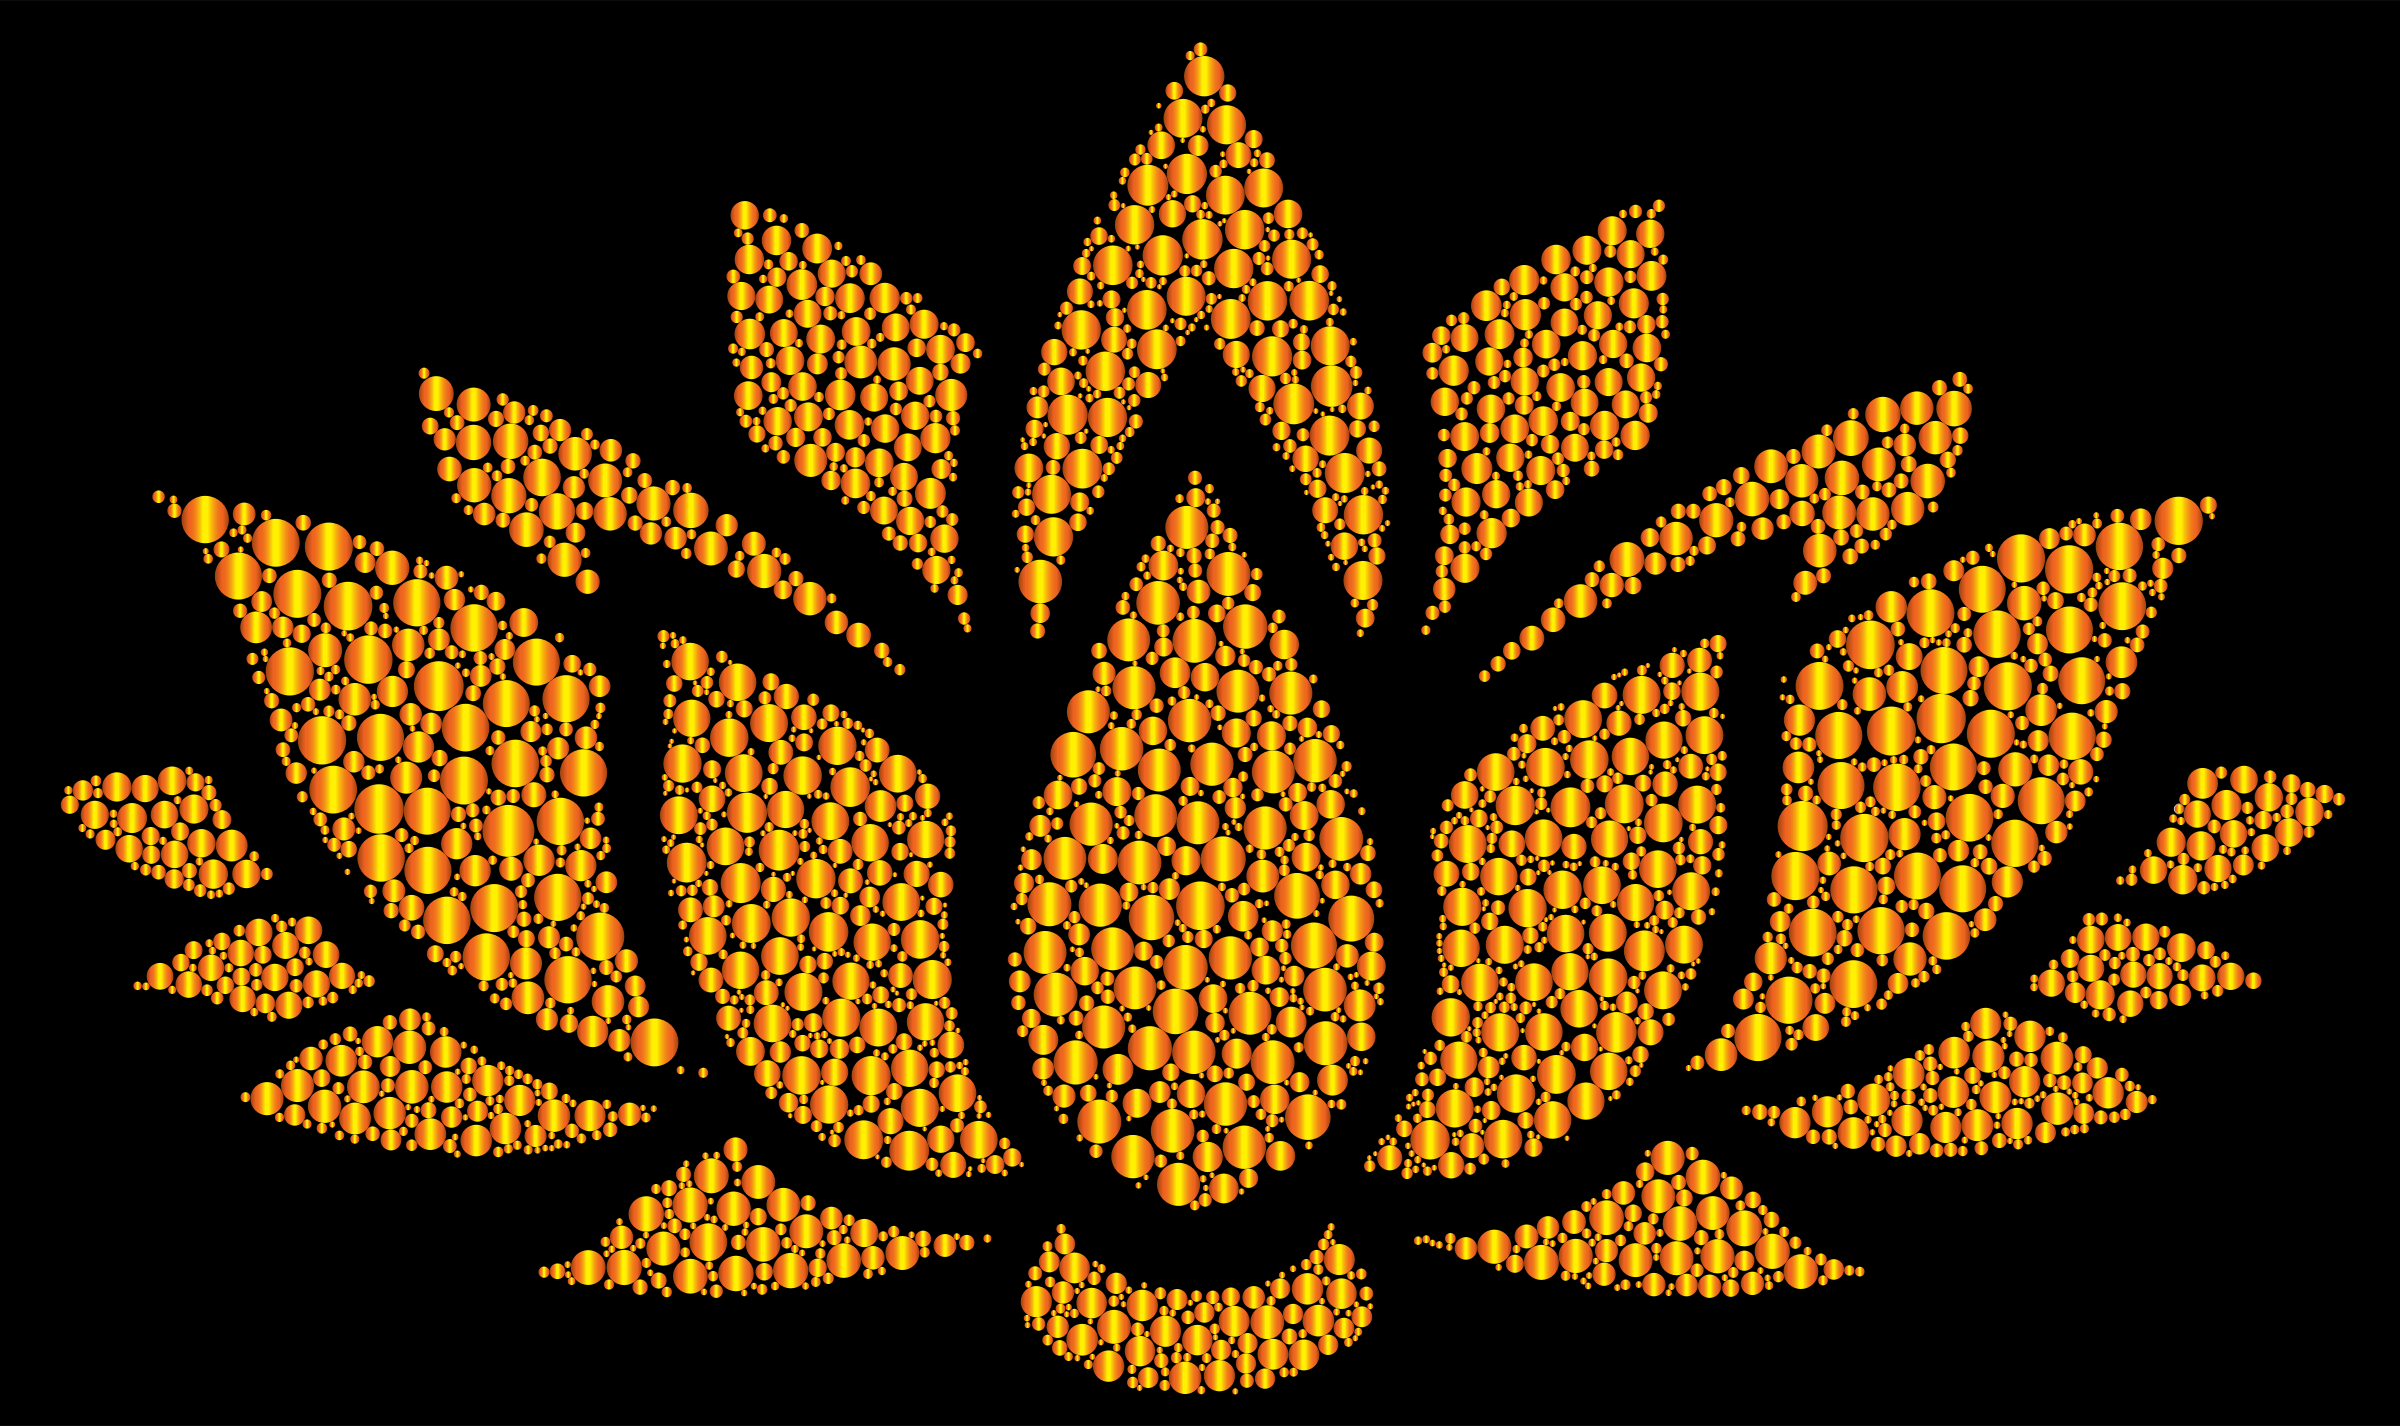 Prismatic Lotus Flower Silhouette 6 Circles 11 by GDJ